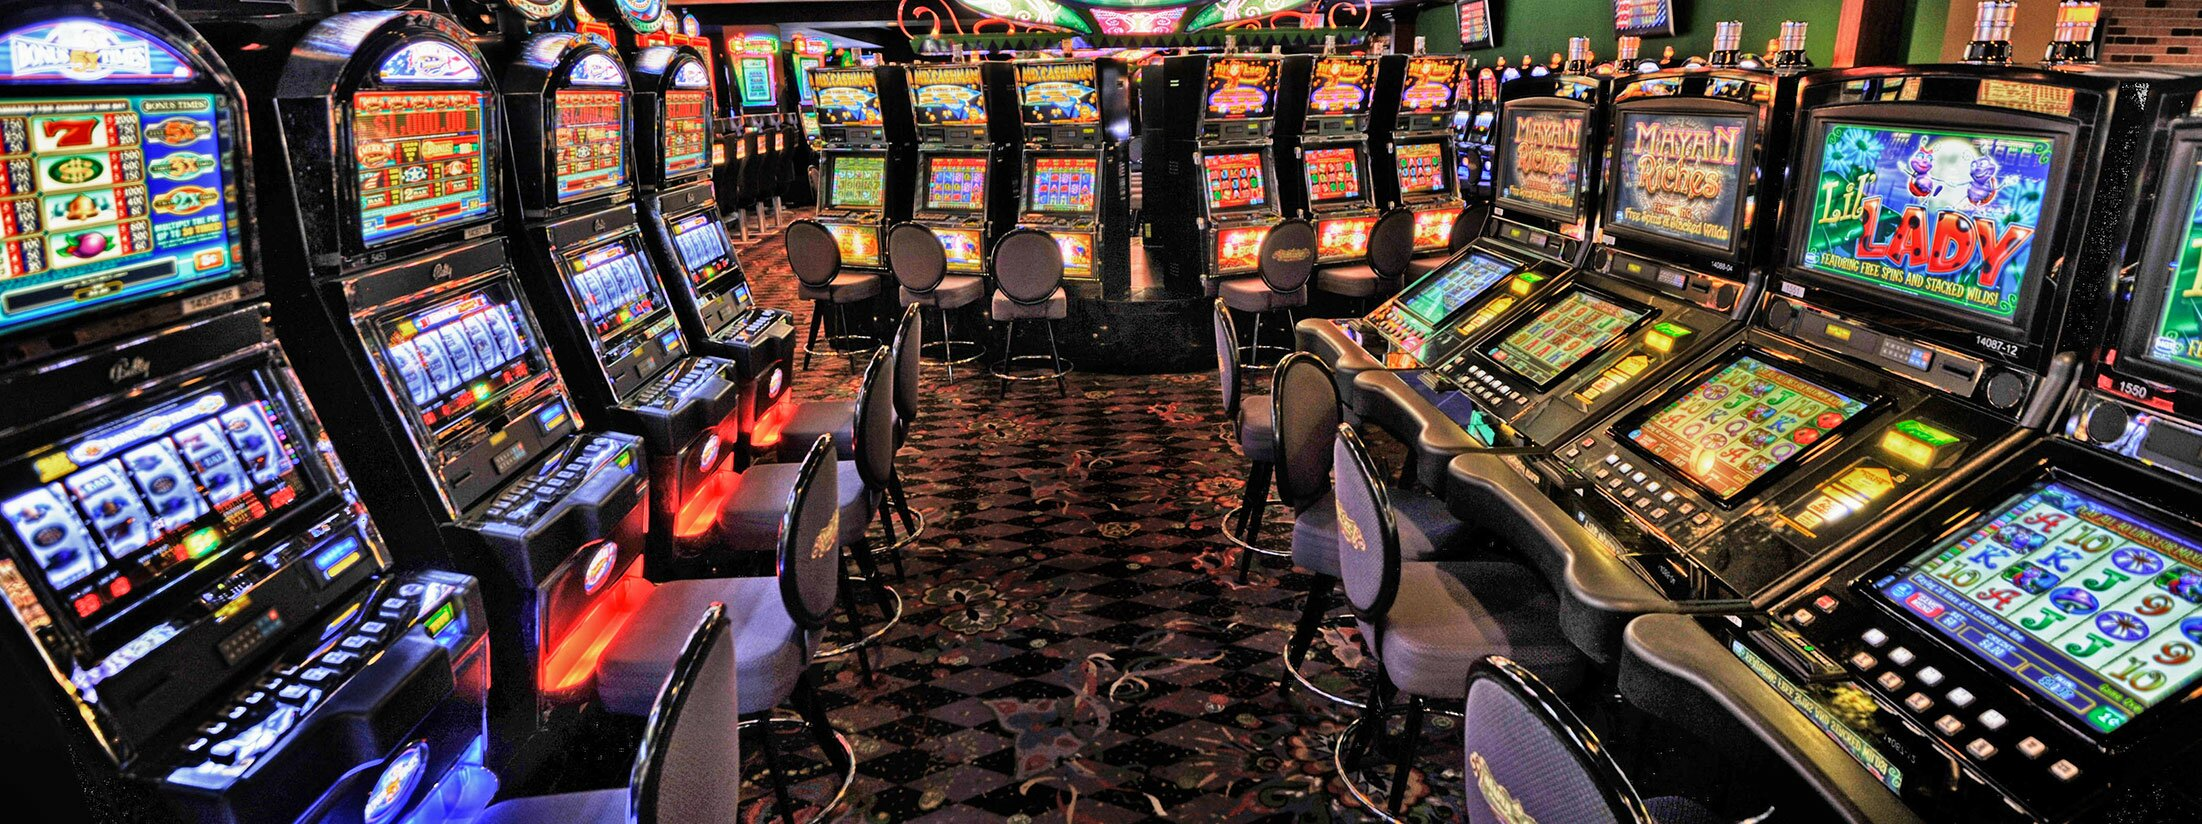 Casino play slot machine